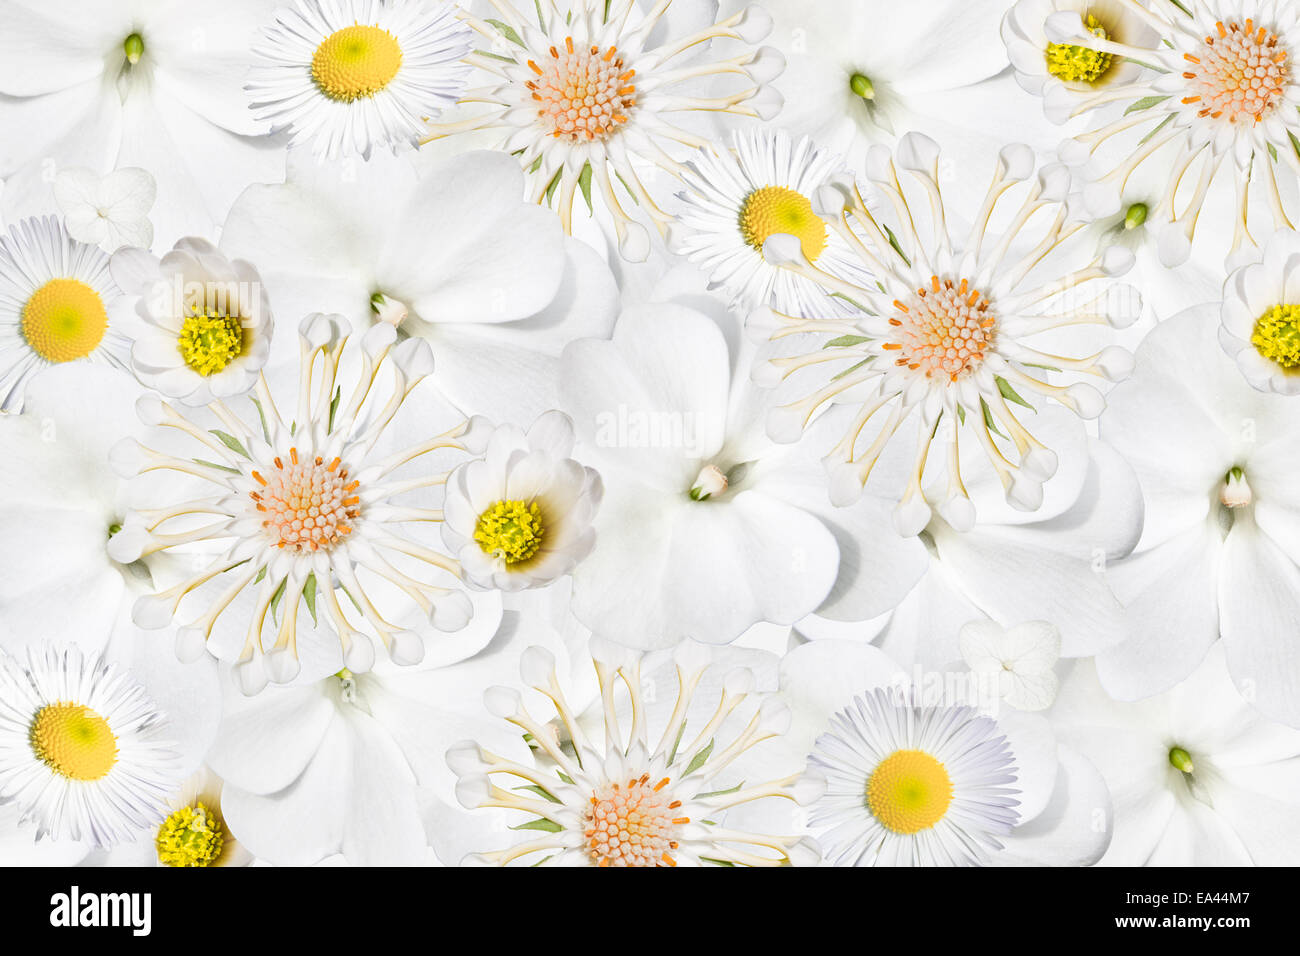 white flowers - Stock Image